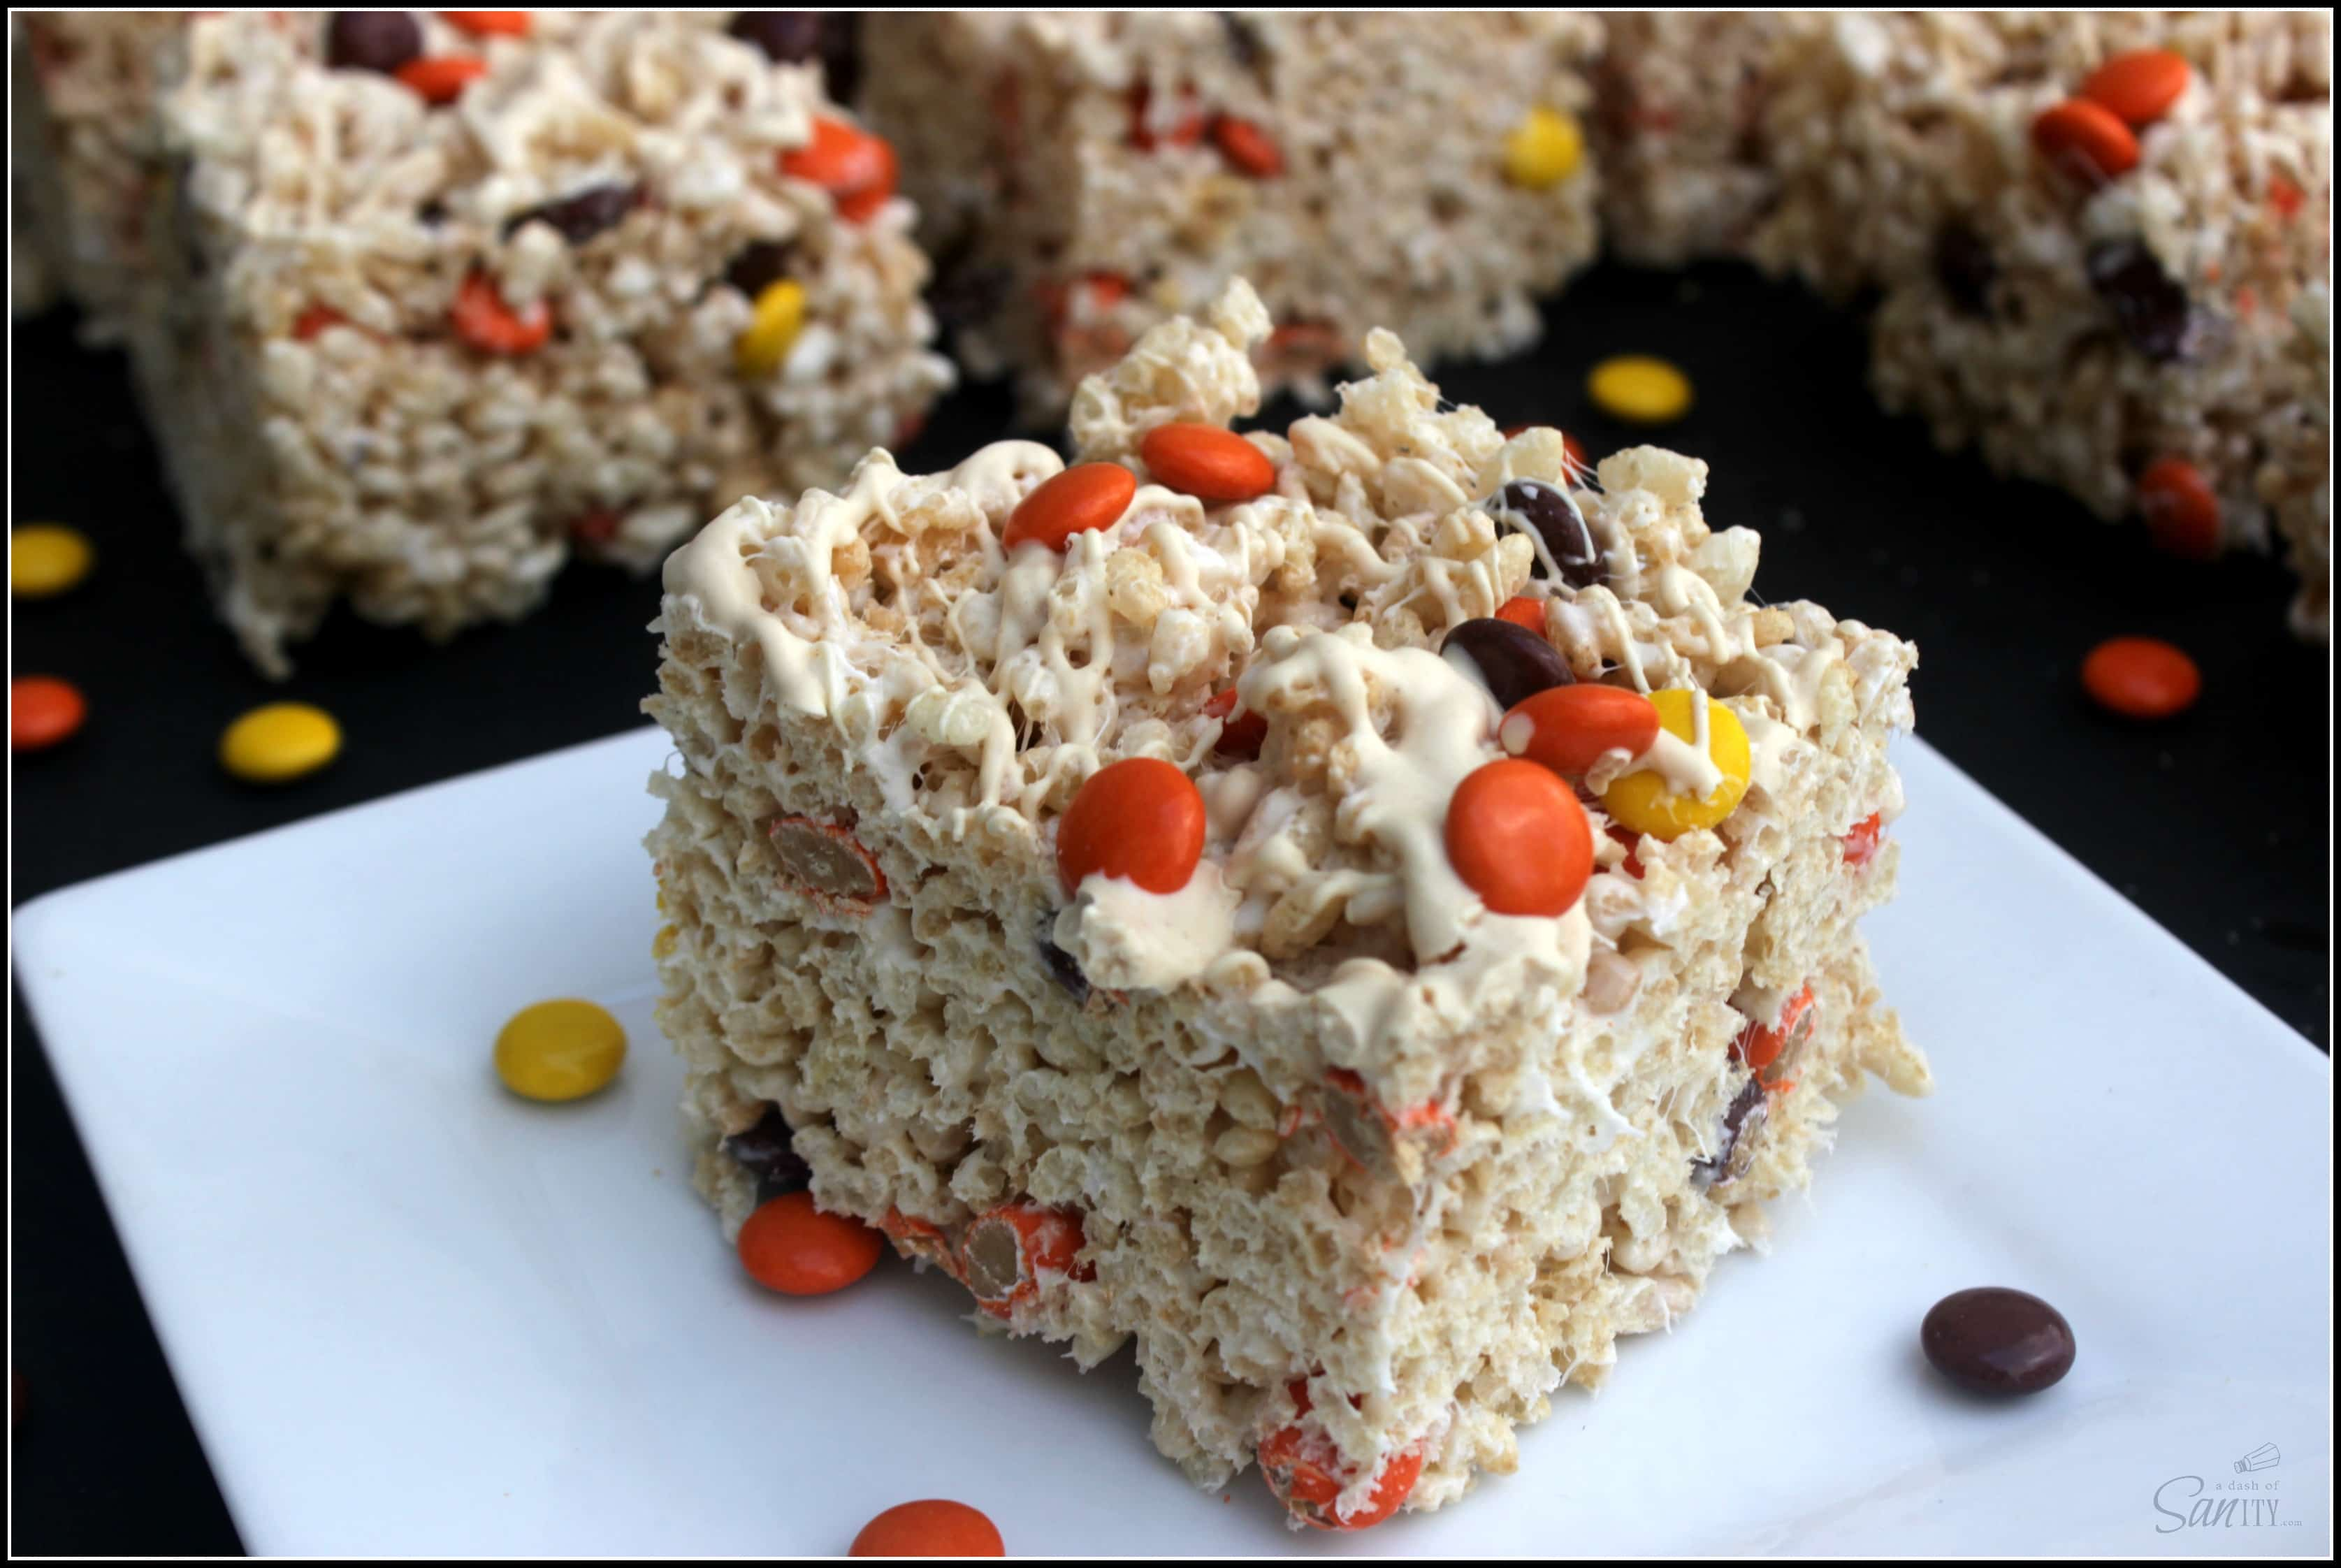 White Chocolate Reese's Pieces Rice Krispies Treats - white chocolate, Reese's Pieces, and a gooey marshmallow treat melded into one of the finest snacks.